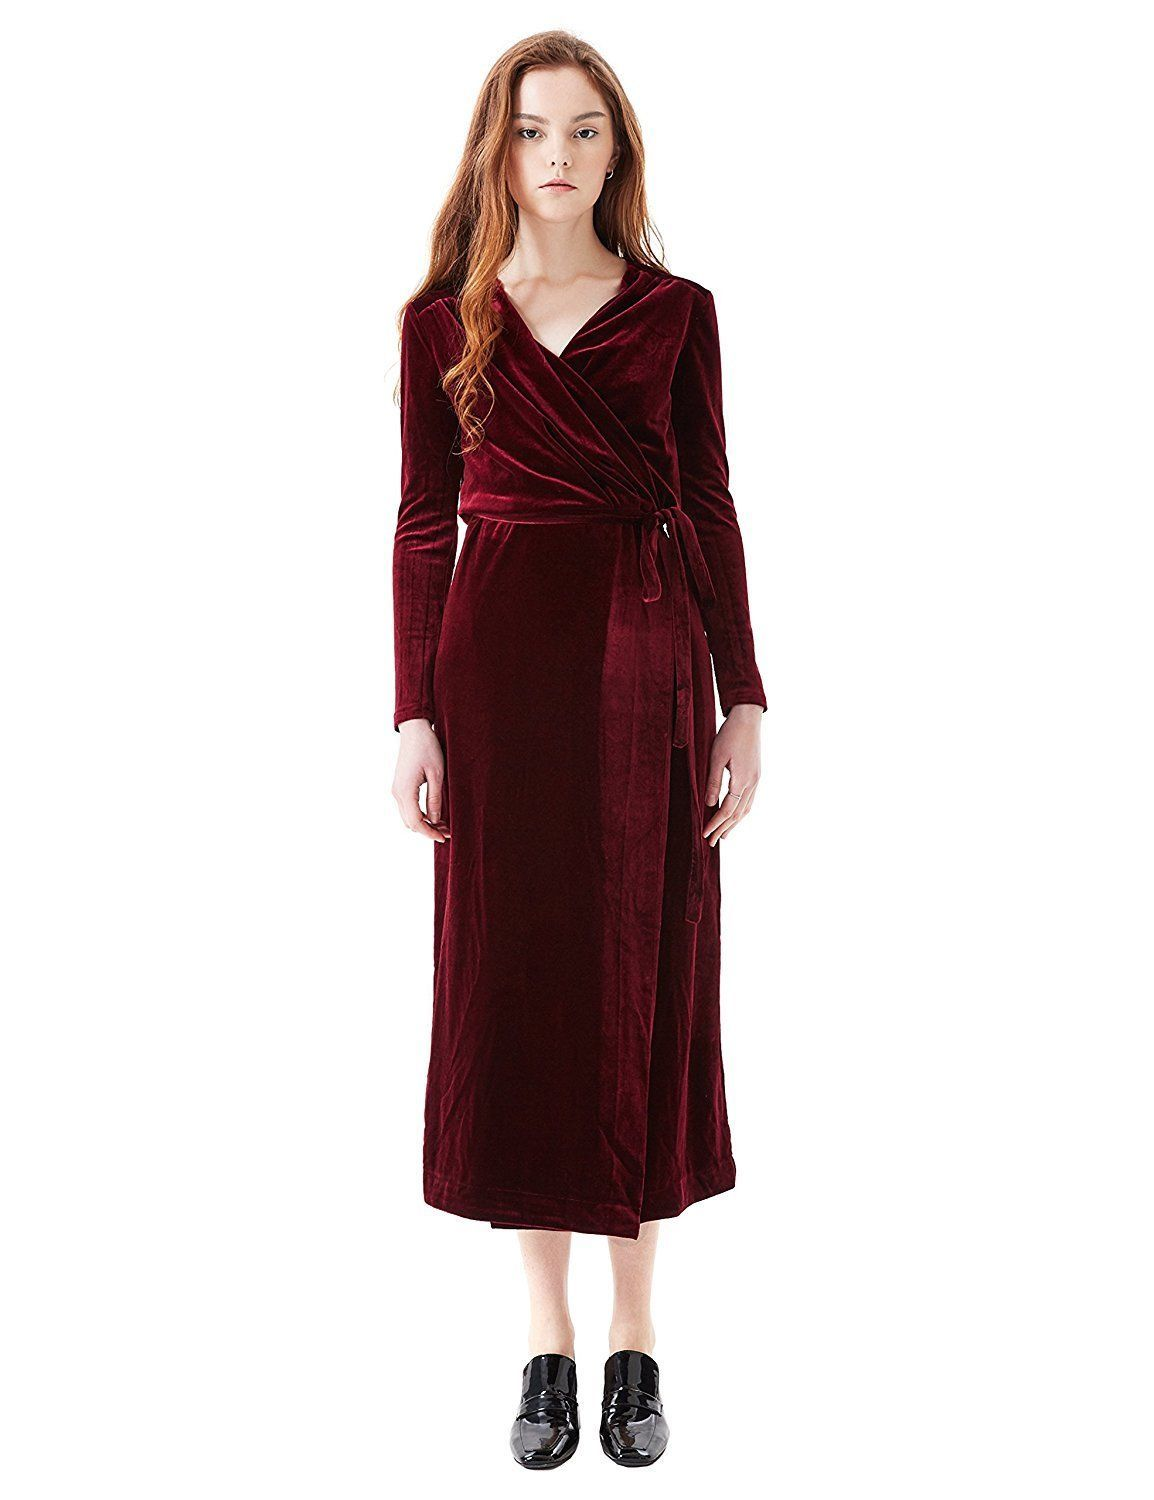 Cool awesome simple retro womenus maxi dress velvet belted vneck